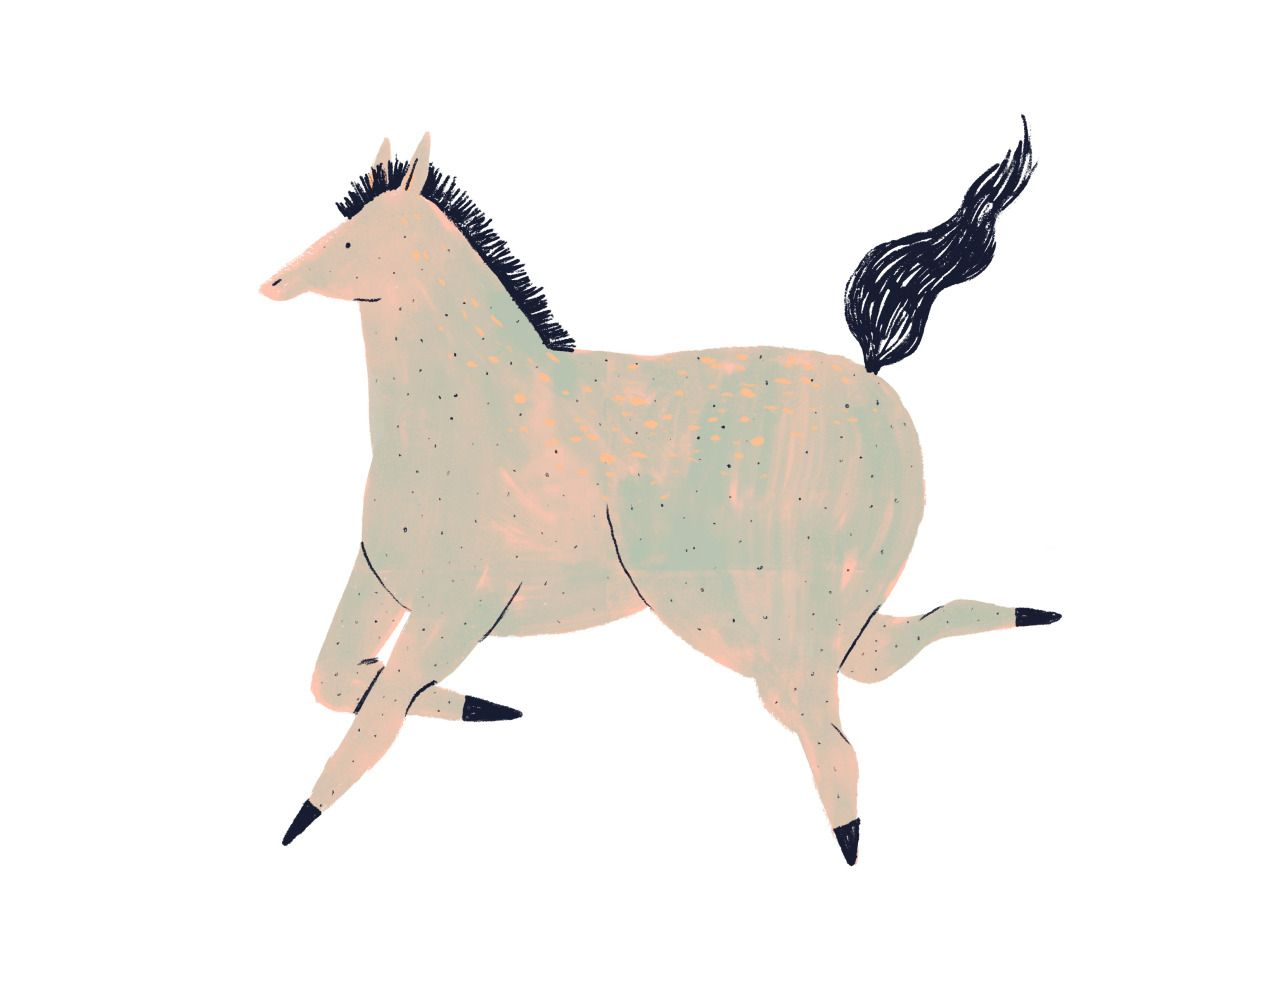 Lizzy O´Donnell | Horse illustration, Horses, Moose art